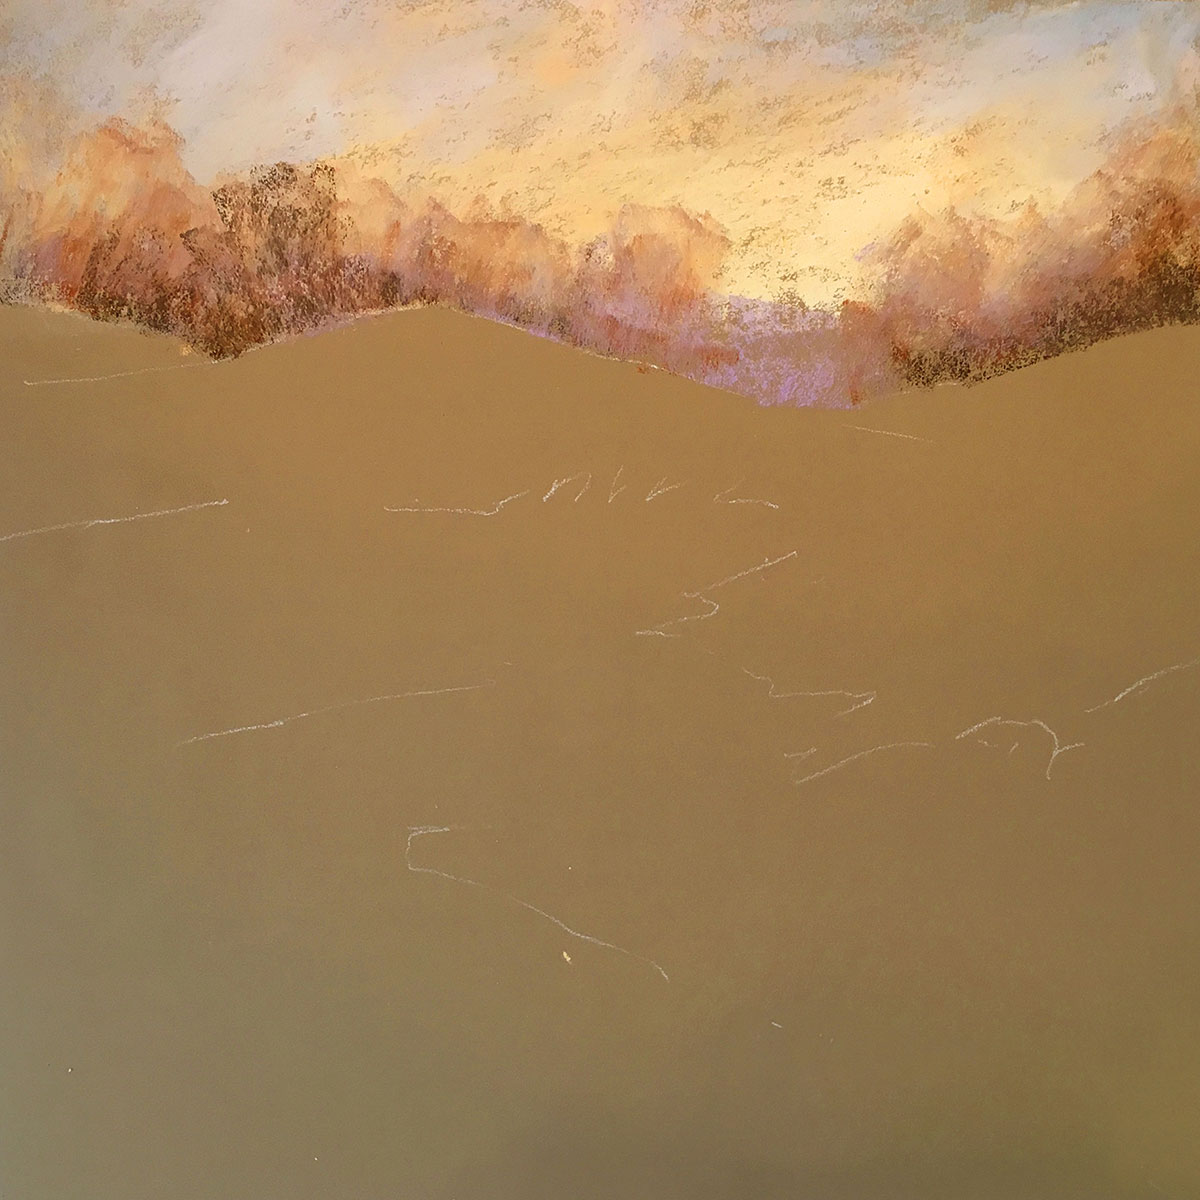 Landscape Painting with Les Darlow and Schmincke Soft Pastels